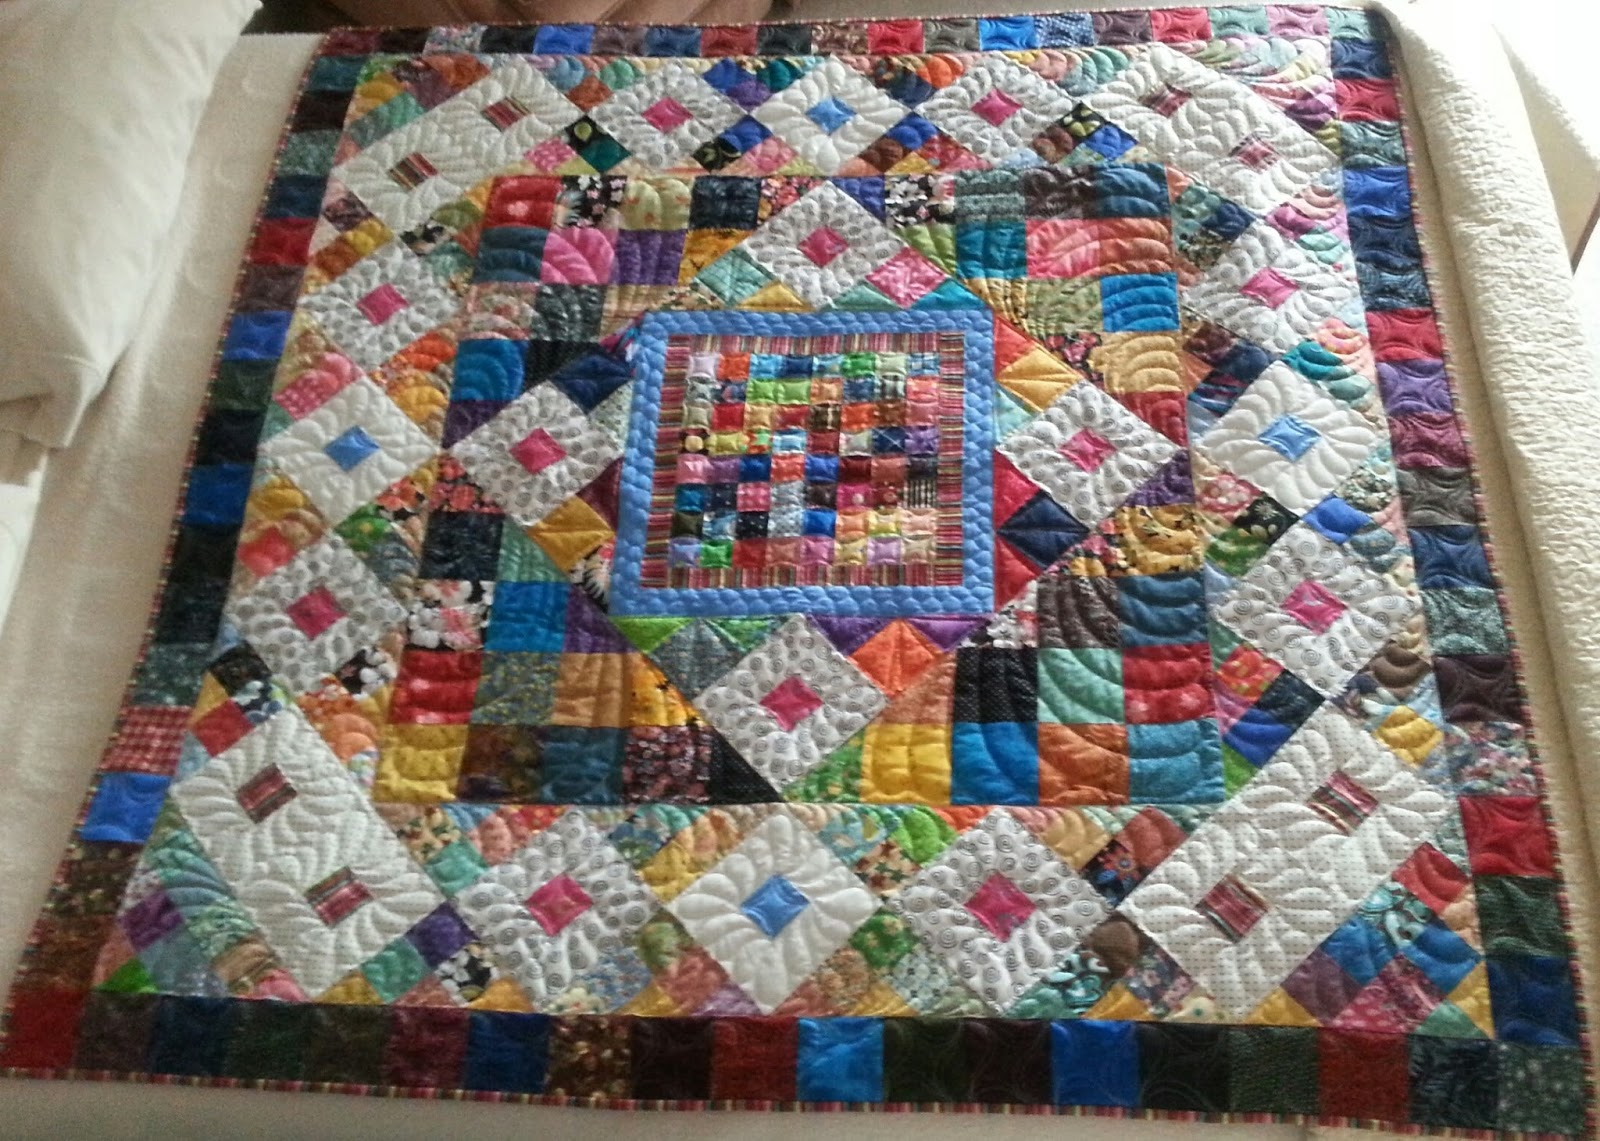 52 Quilters Week 38 An End To A Great Week